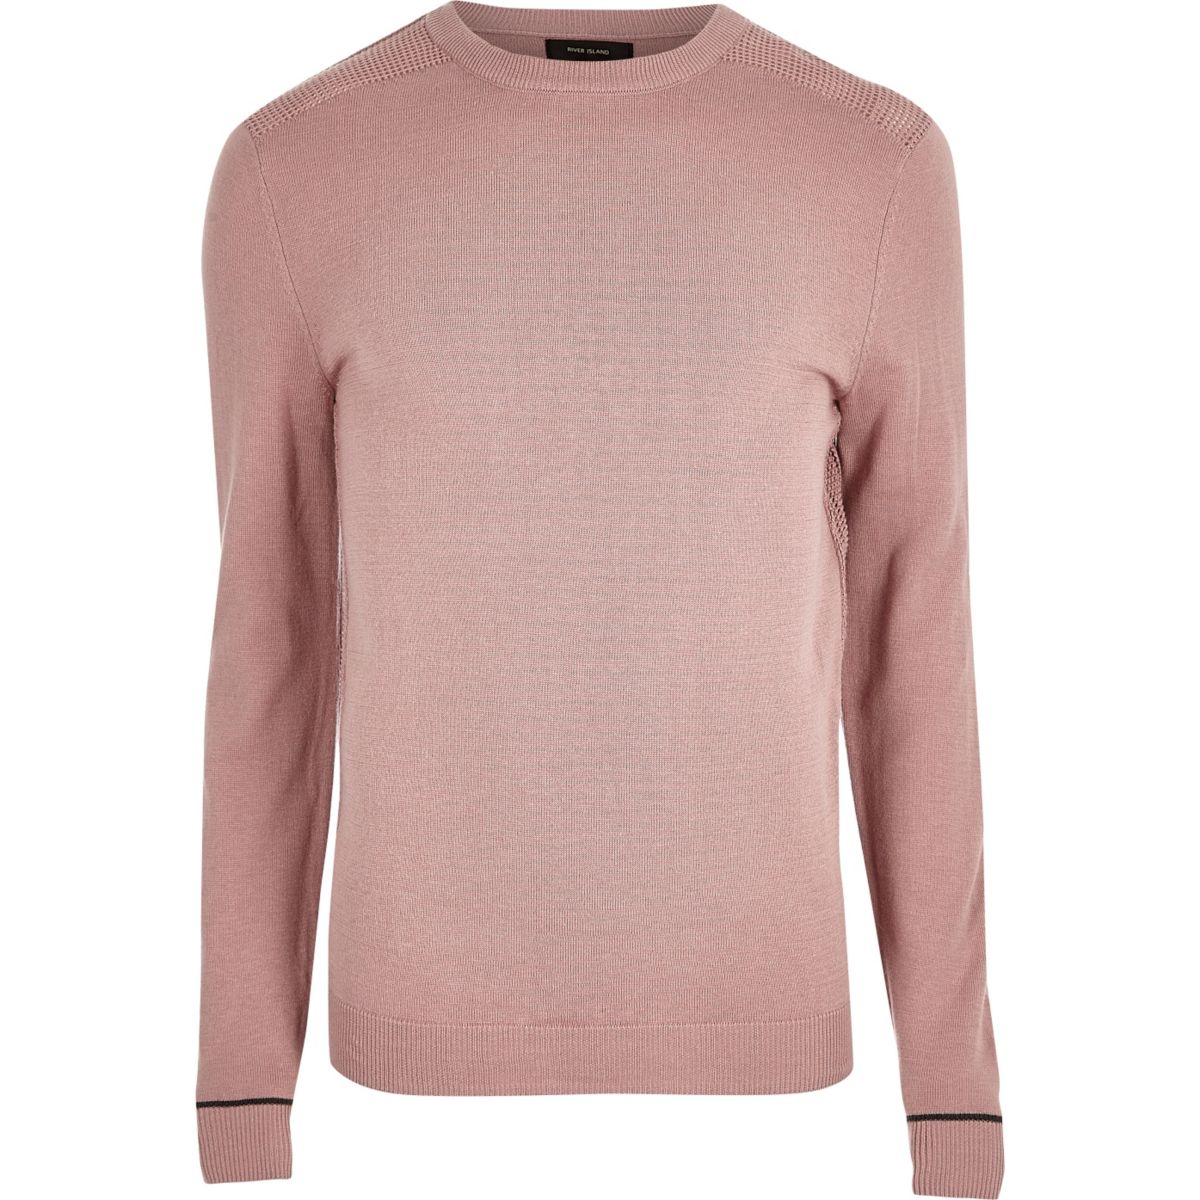 Light pink knit slim fit mesh panel sweater